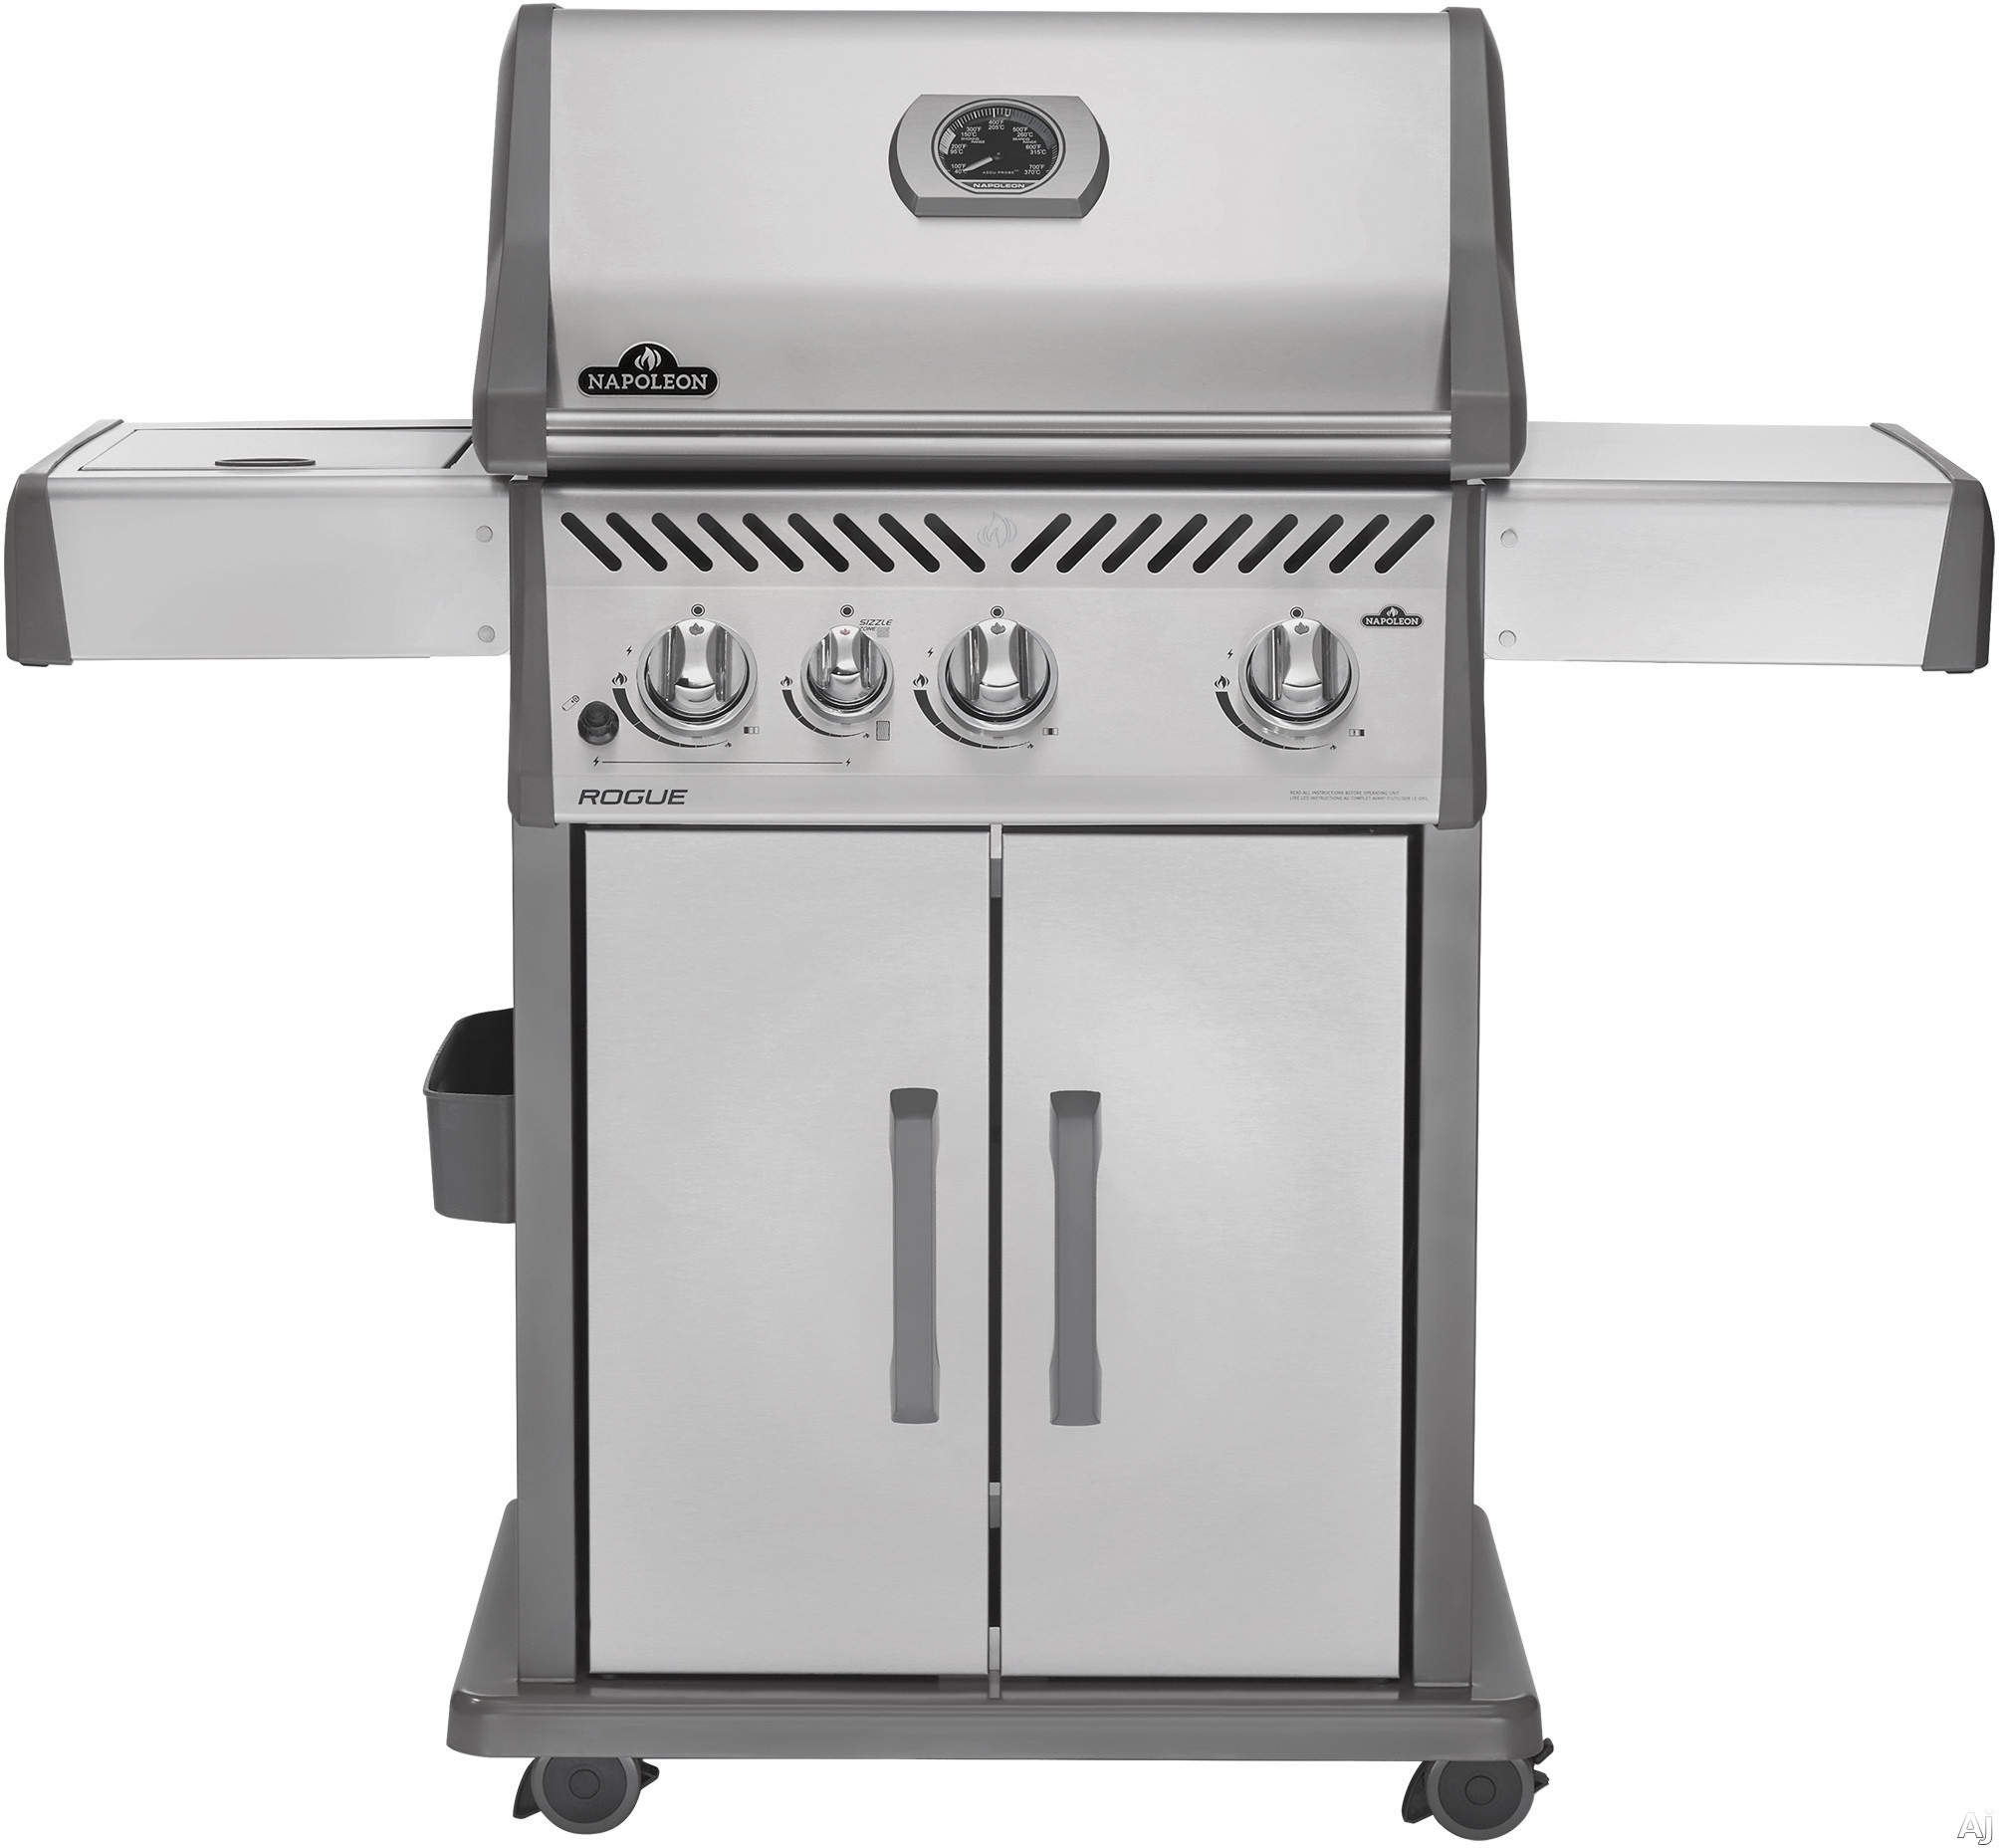 Image of Napoleon Rogue Series R425SIBPSS 32 Inch Gas Grill with 3 12,000 BTU Stainless Steel Tube Burners, 9,000 BTU Infrared SIZZLE ZONE Side Burner, JETFIRE Ignition, Steel Cart, 625 sq. in. Total Area, WAVE Stainless Steel Grid, Chrome Warming Rack and Stainle